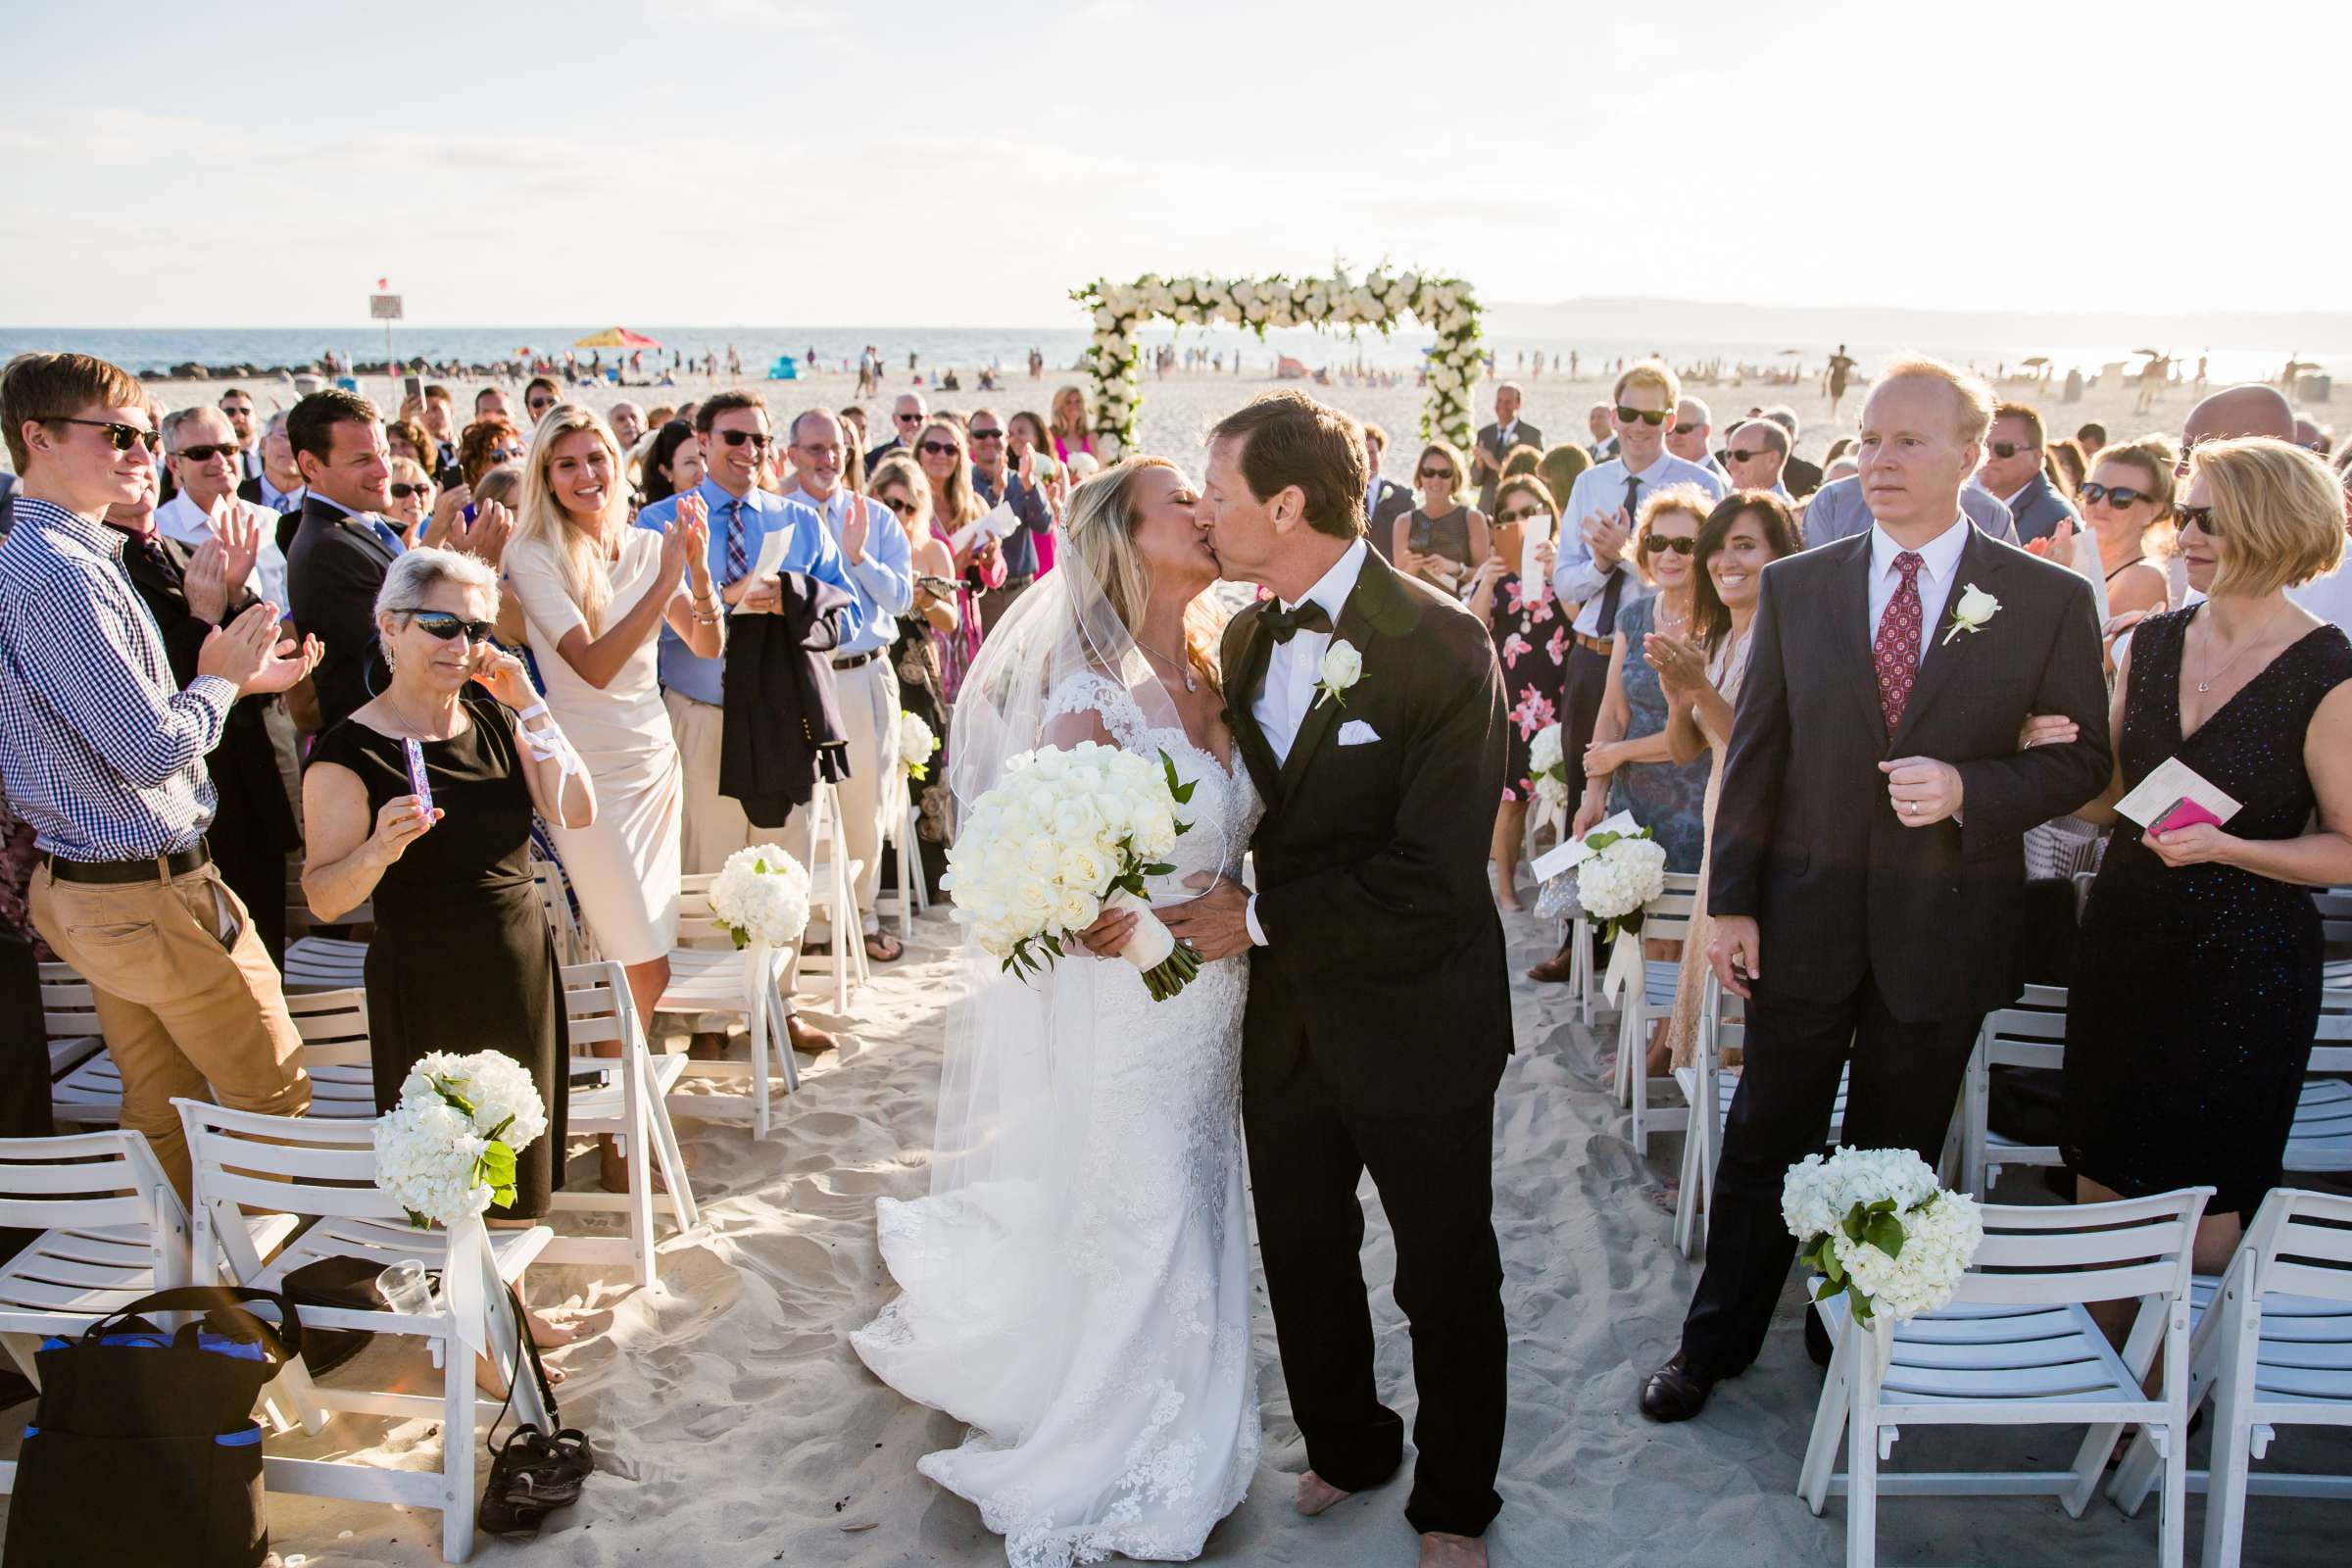 Hotel Del Coronado Wedding coordinated by Creative Affairs Inc, Diane and Paul Wedding Photo #67 by True Photography